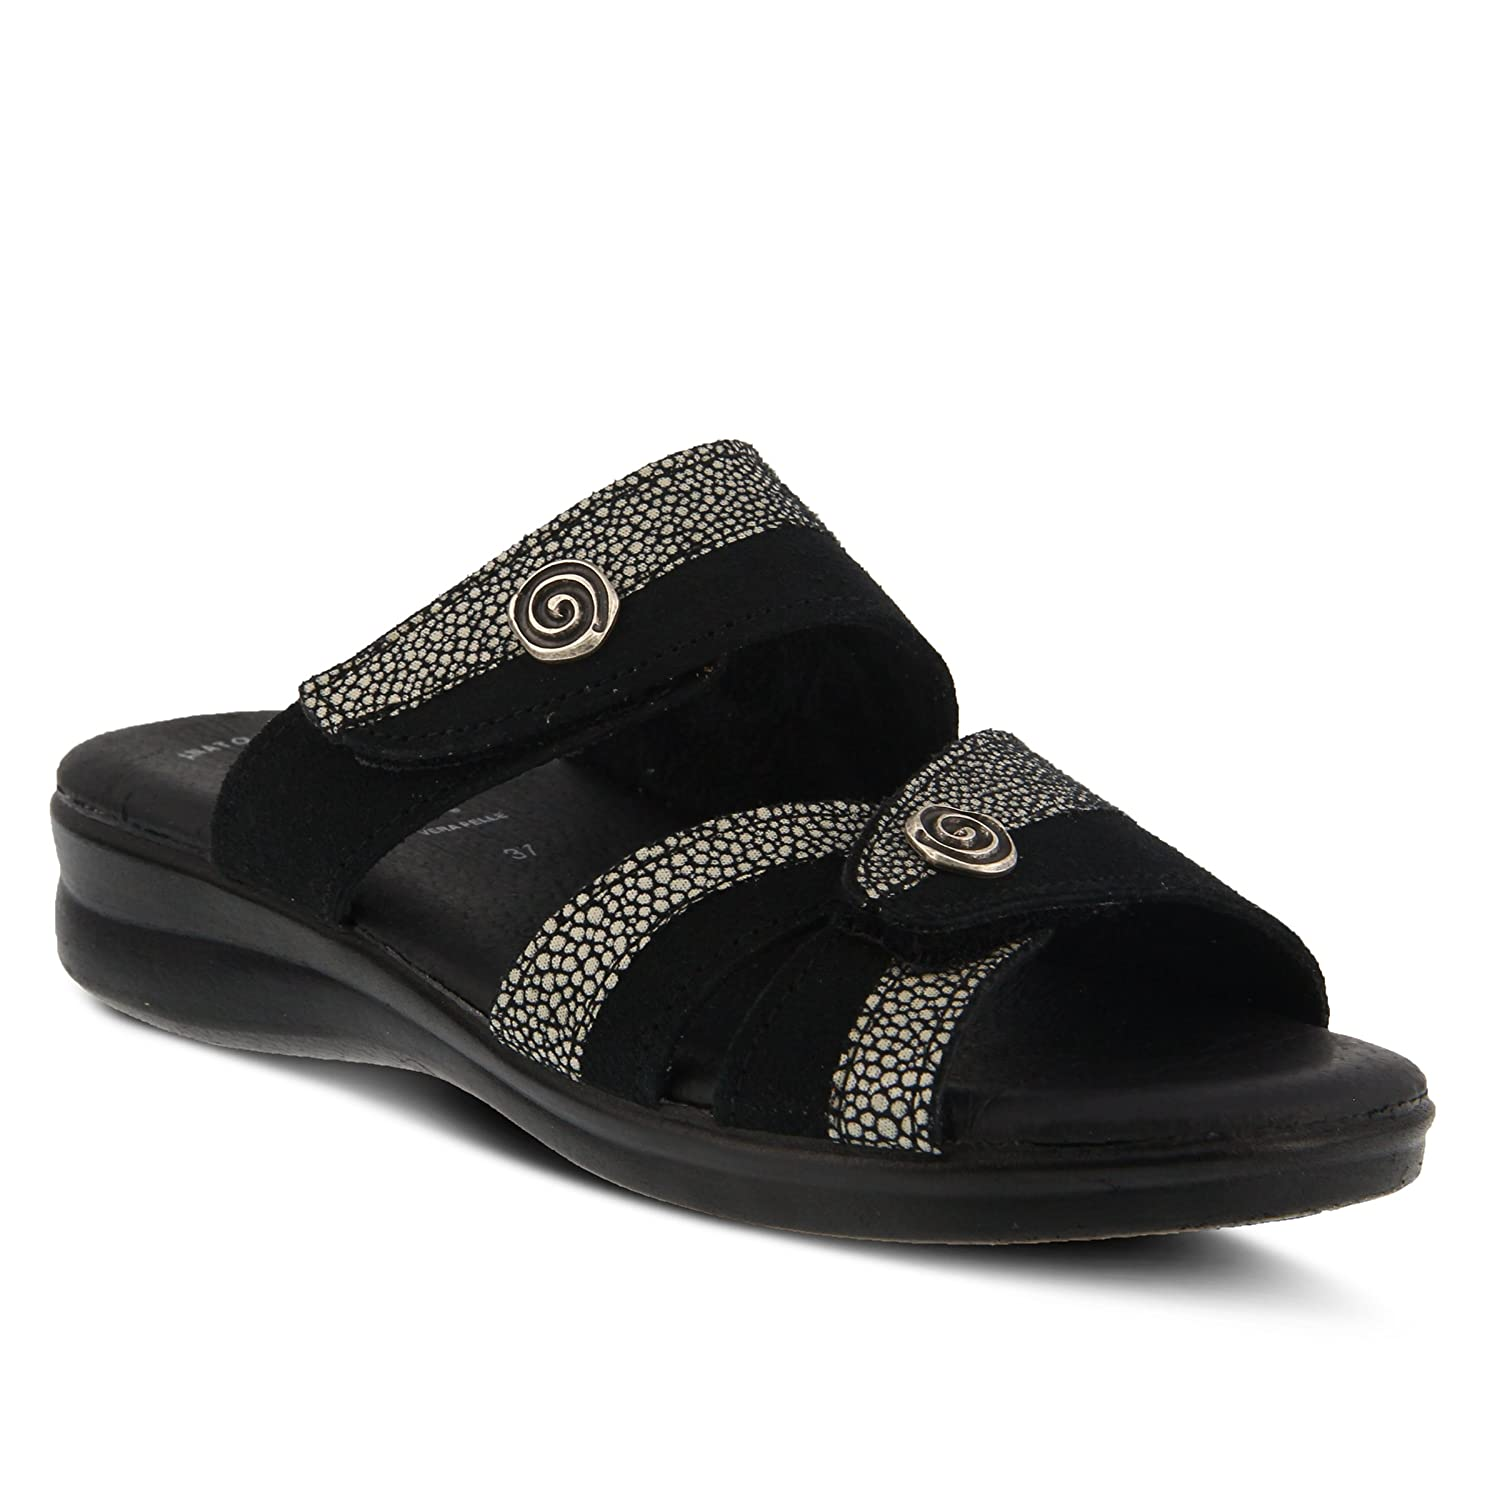 Flexus by Spring Step Women's Quasida Slide Sandal B079C43RHR 36 M EU (US 5.5-6 US)|Black/Multi